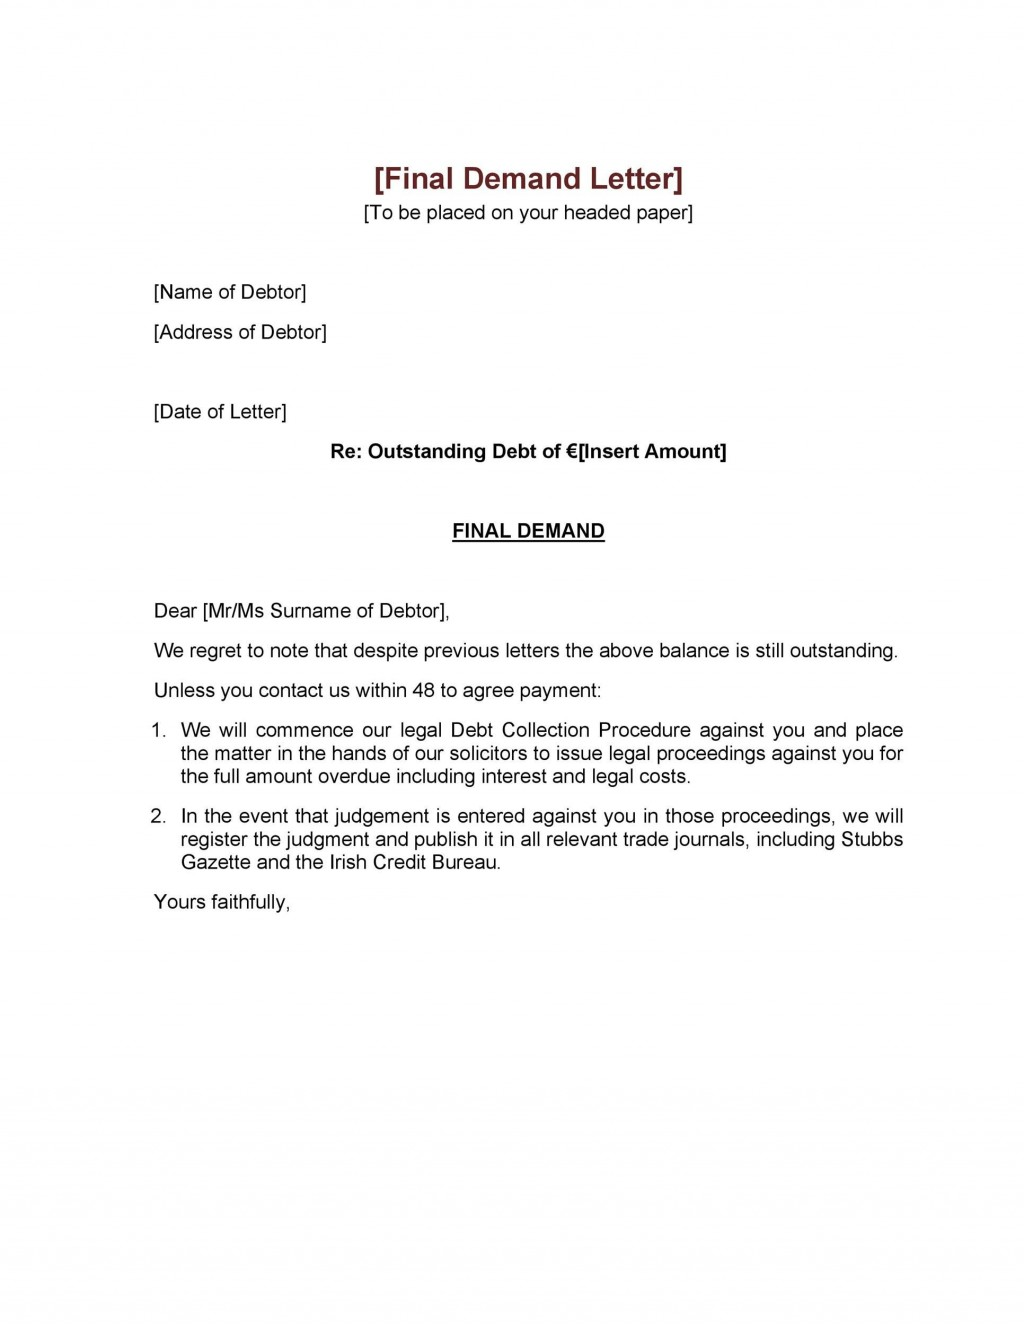 006 Astounding Final Payment Demand Letter Template Inspiration  For UkLarge